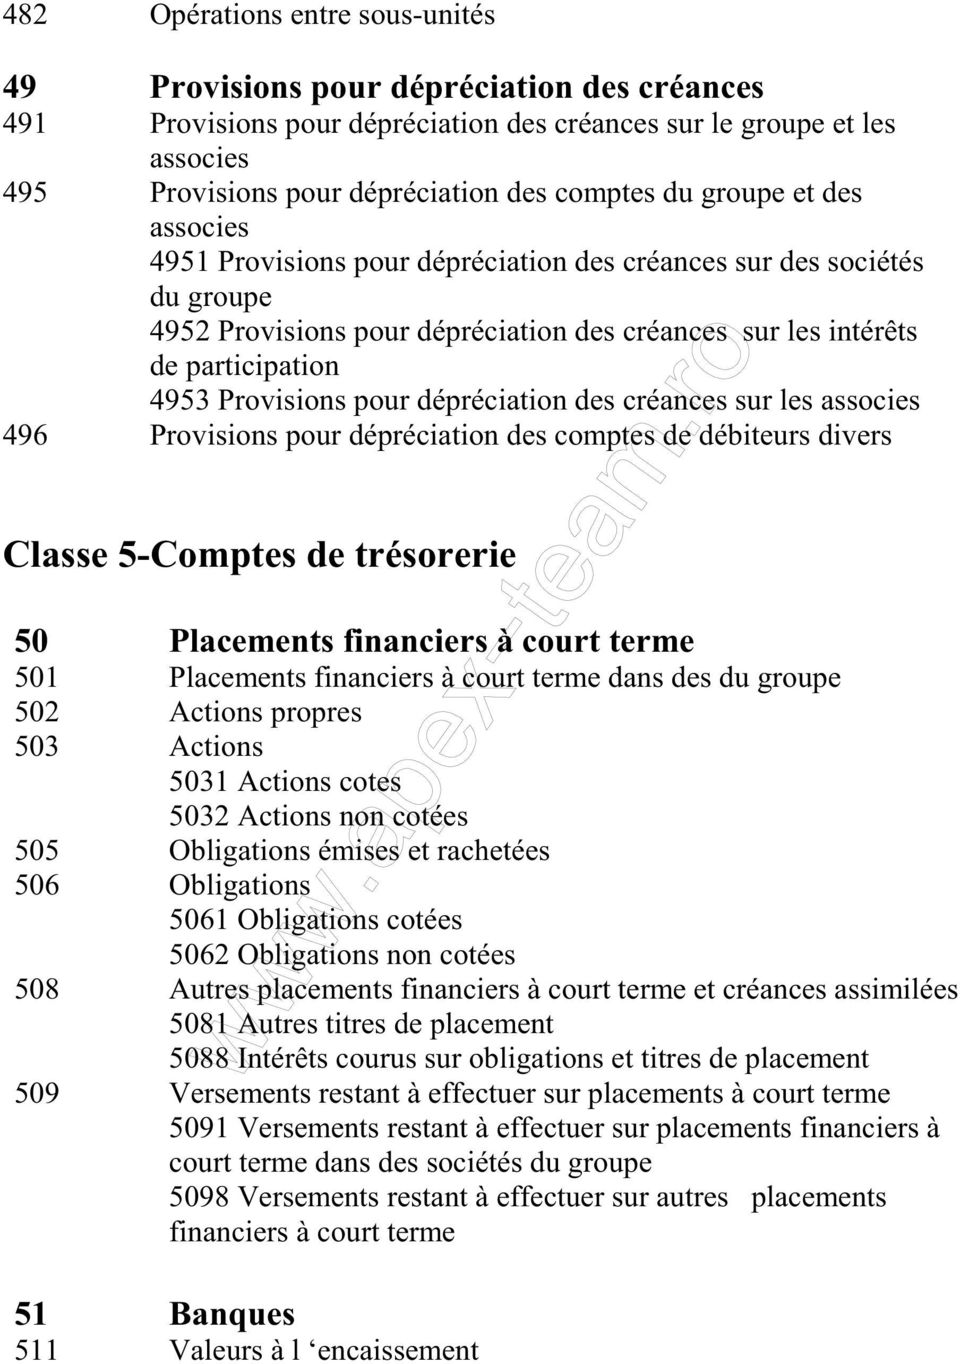 pour dépréciation des créances sur les associes 496 Provisions pour dépréciation des comptes de débiteurs divers Classe 5-Comptes de trésorerie 50 Placements financiers à court terme 501 Placements